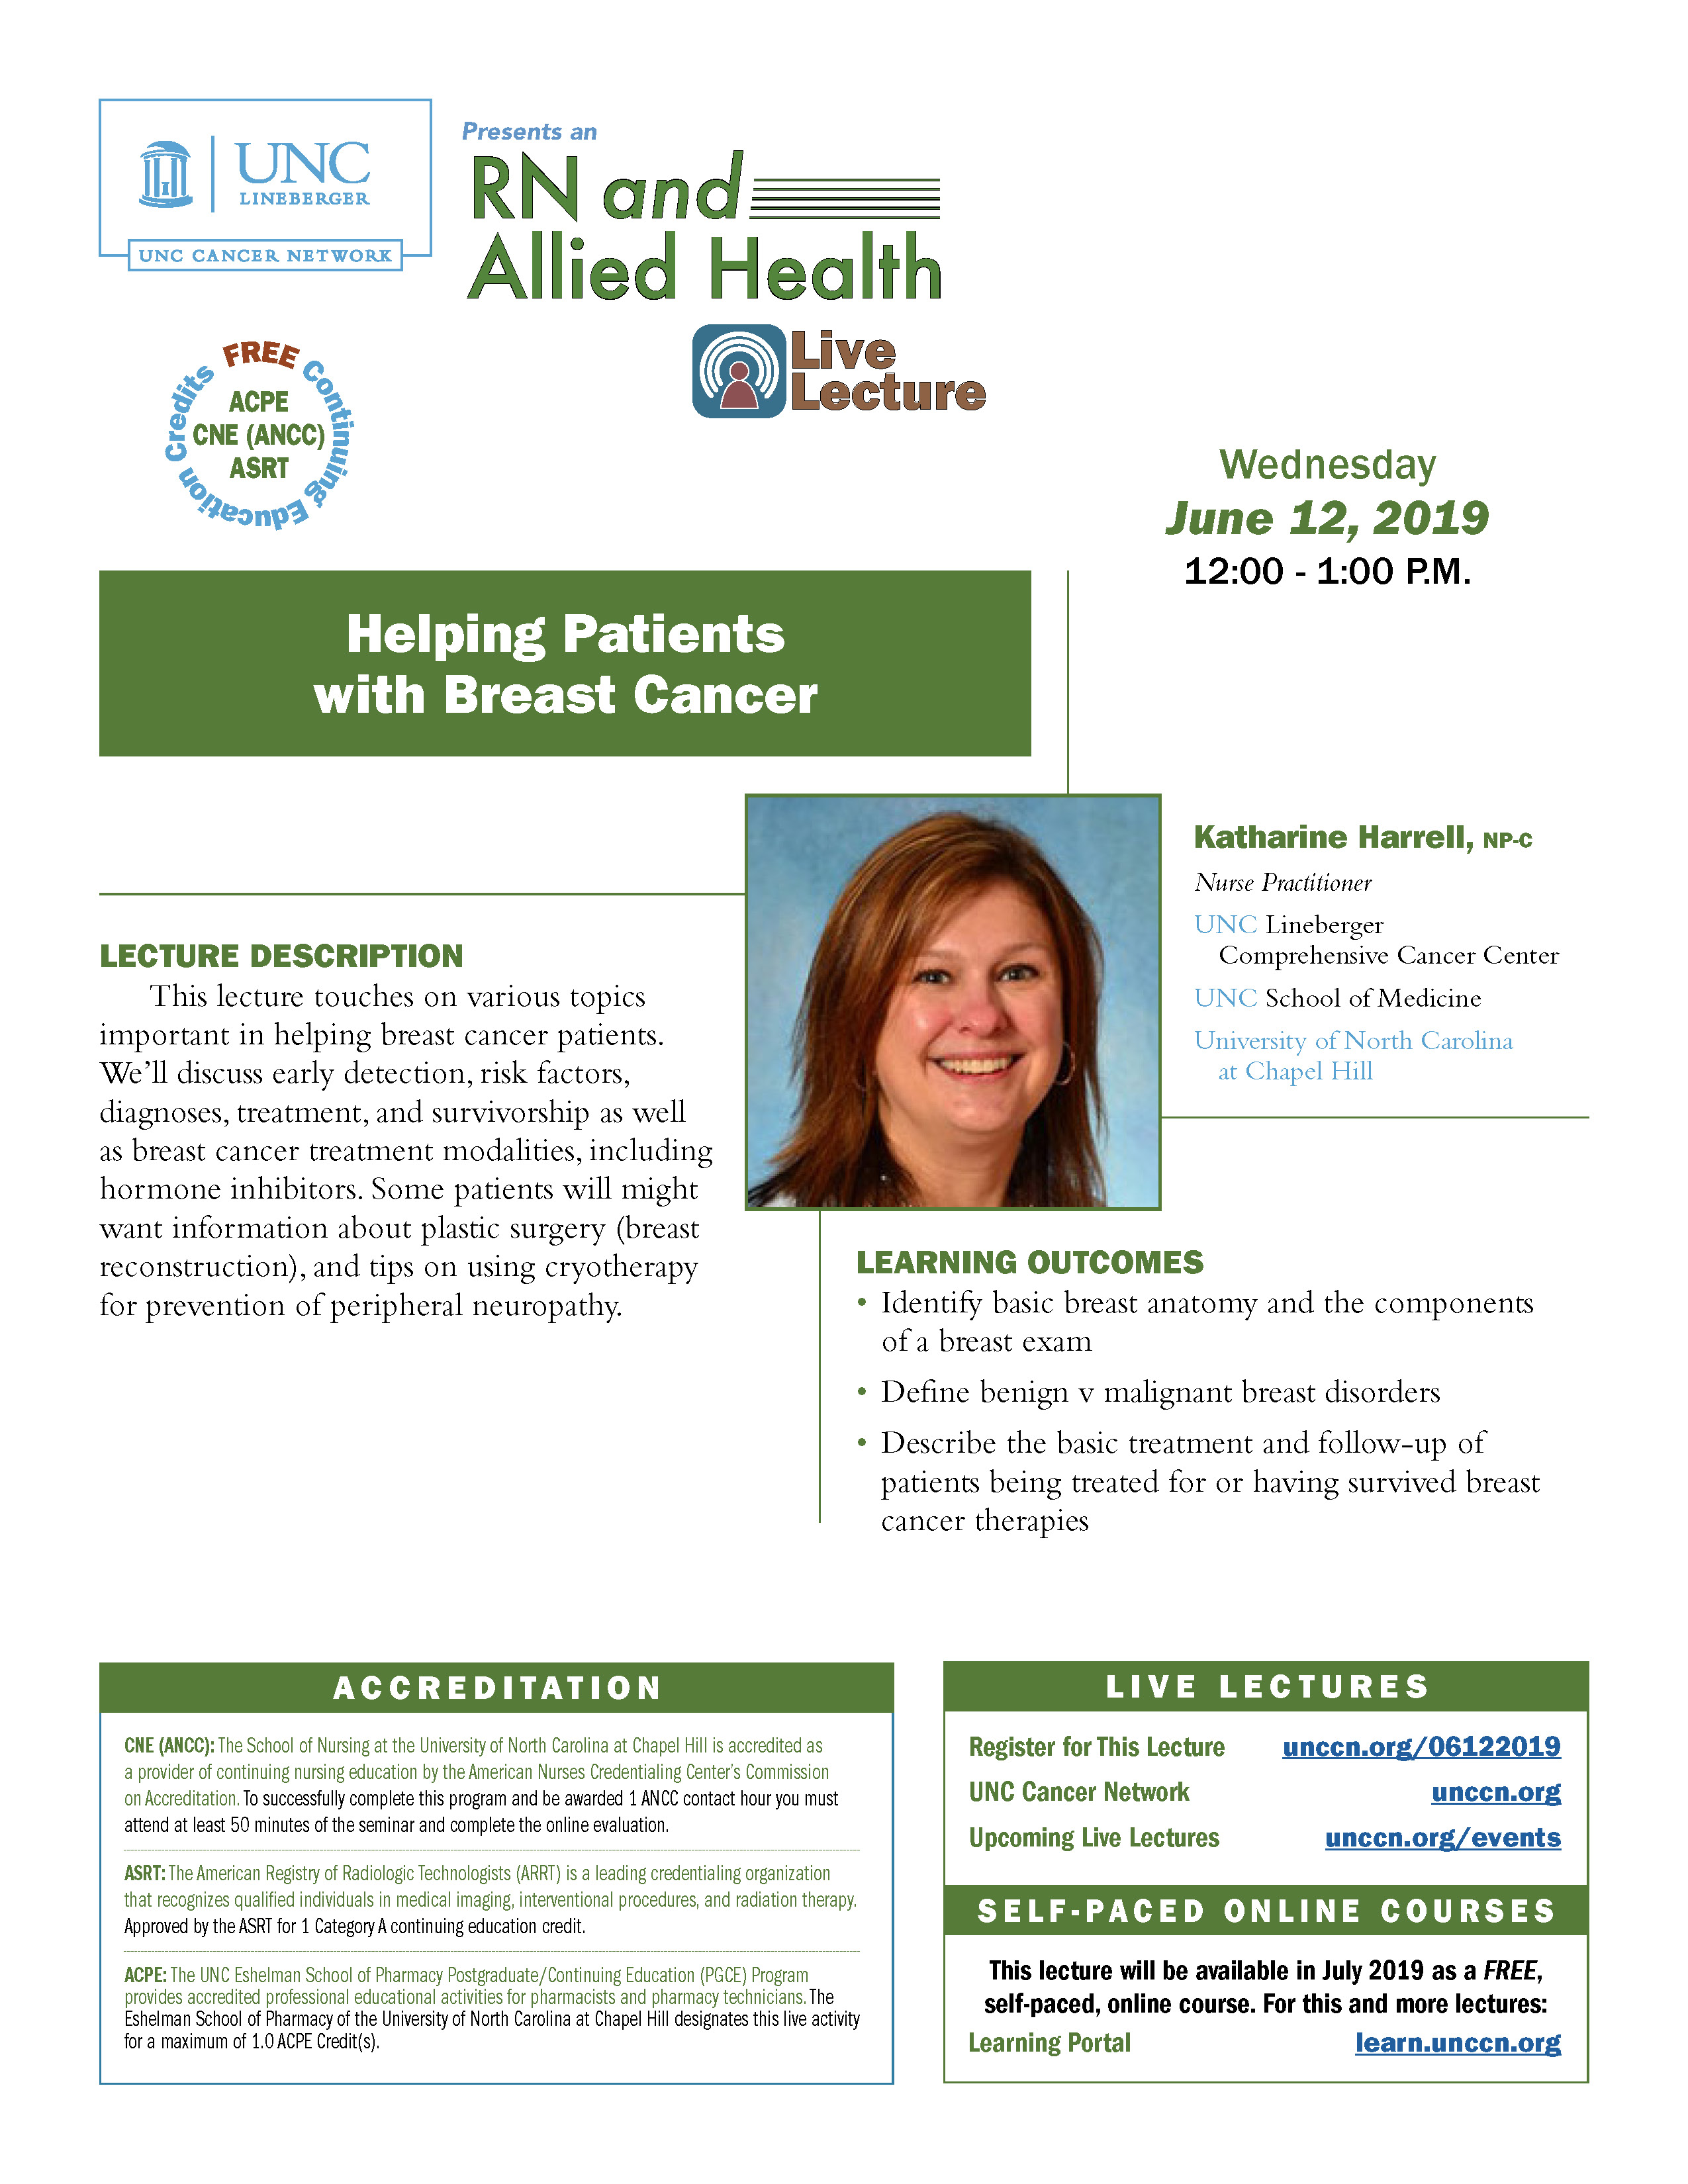 Helping Patients with Breast Cancer — RN and Allied Health